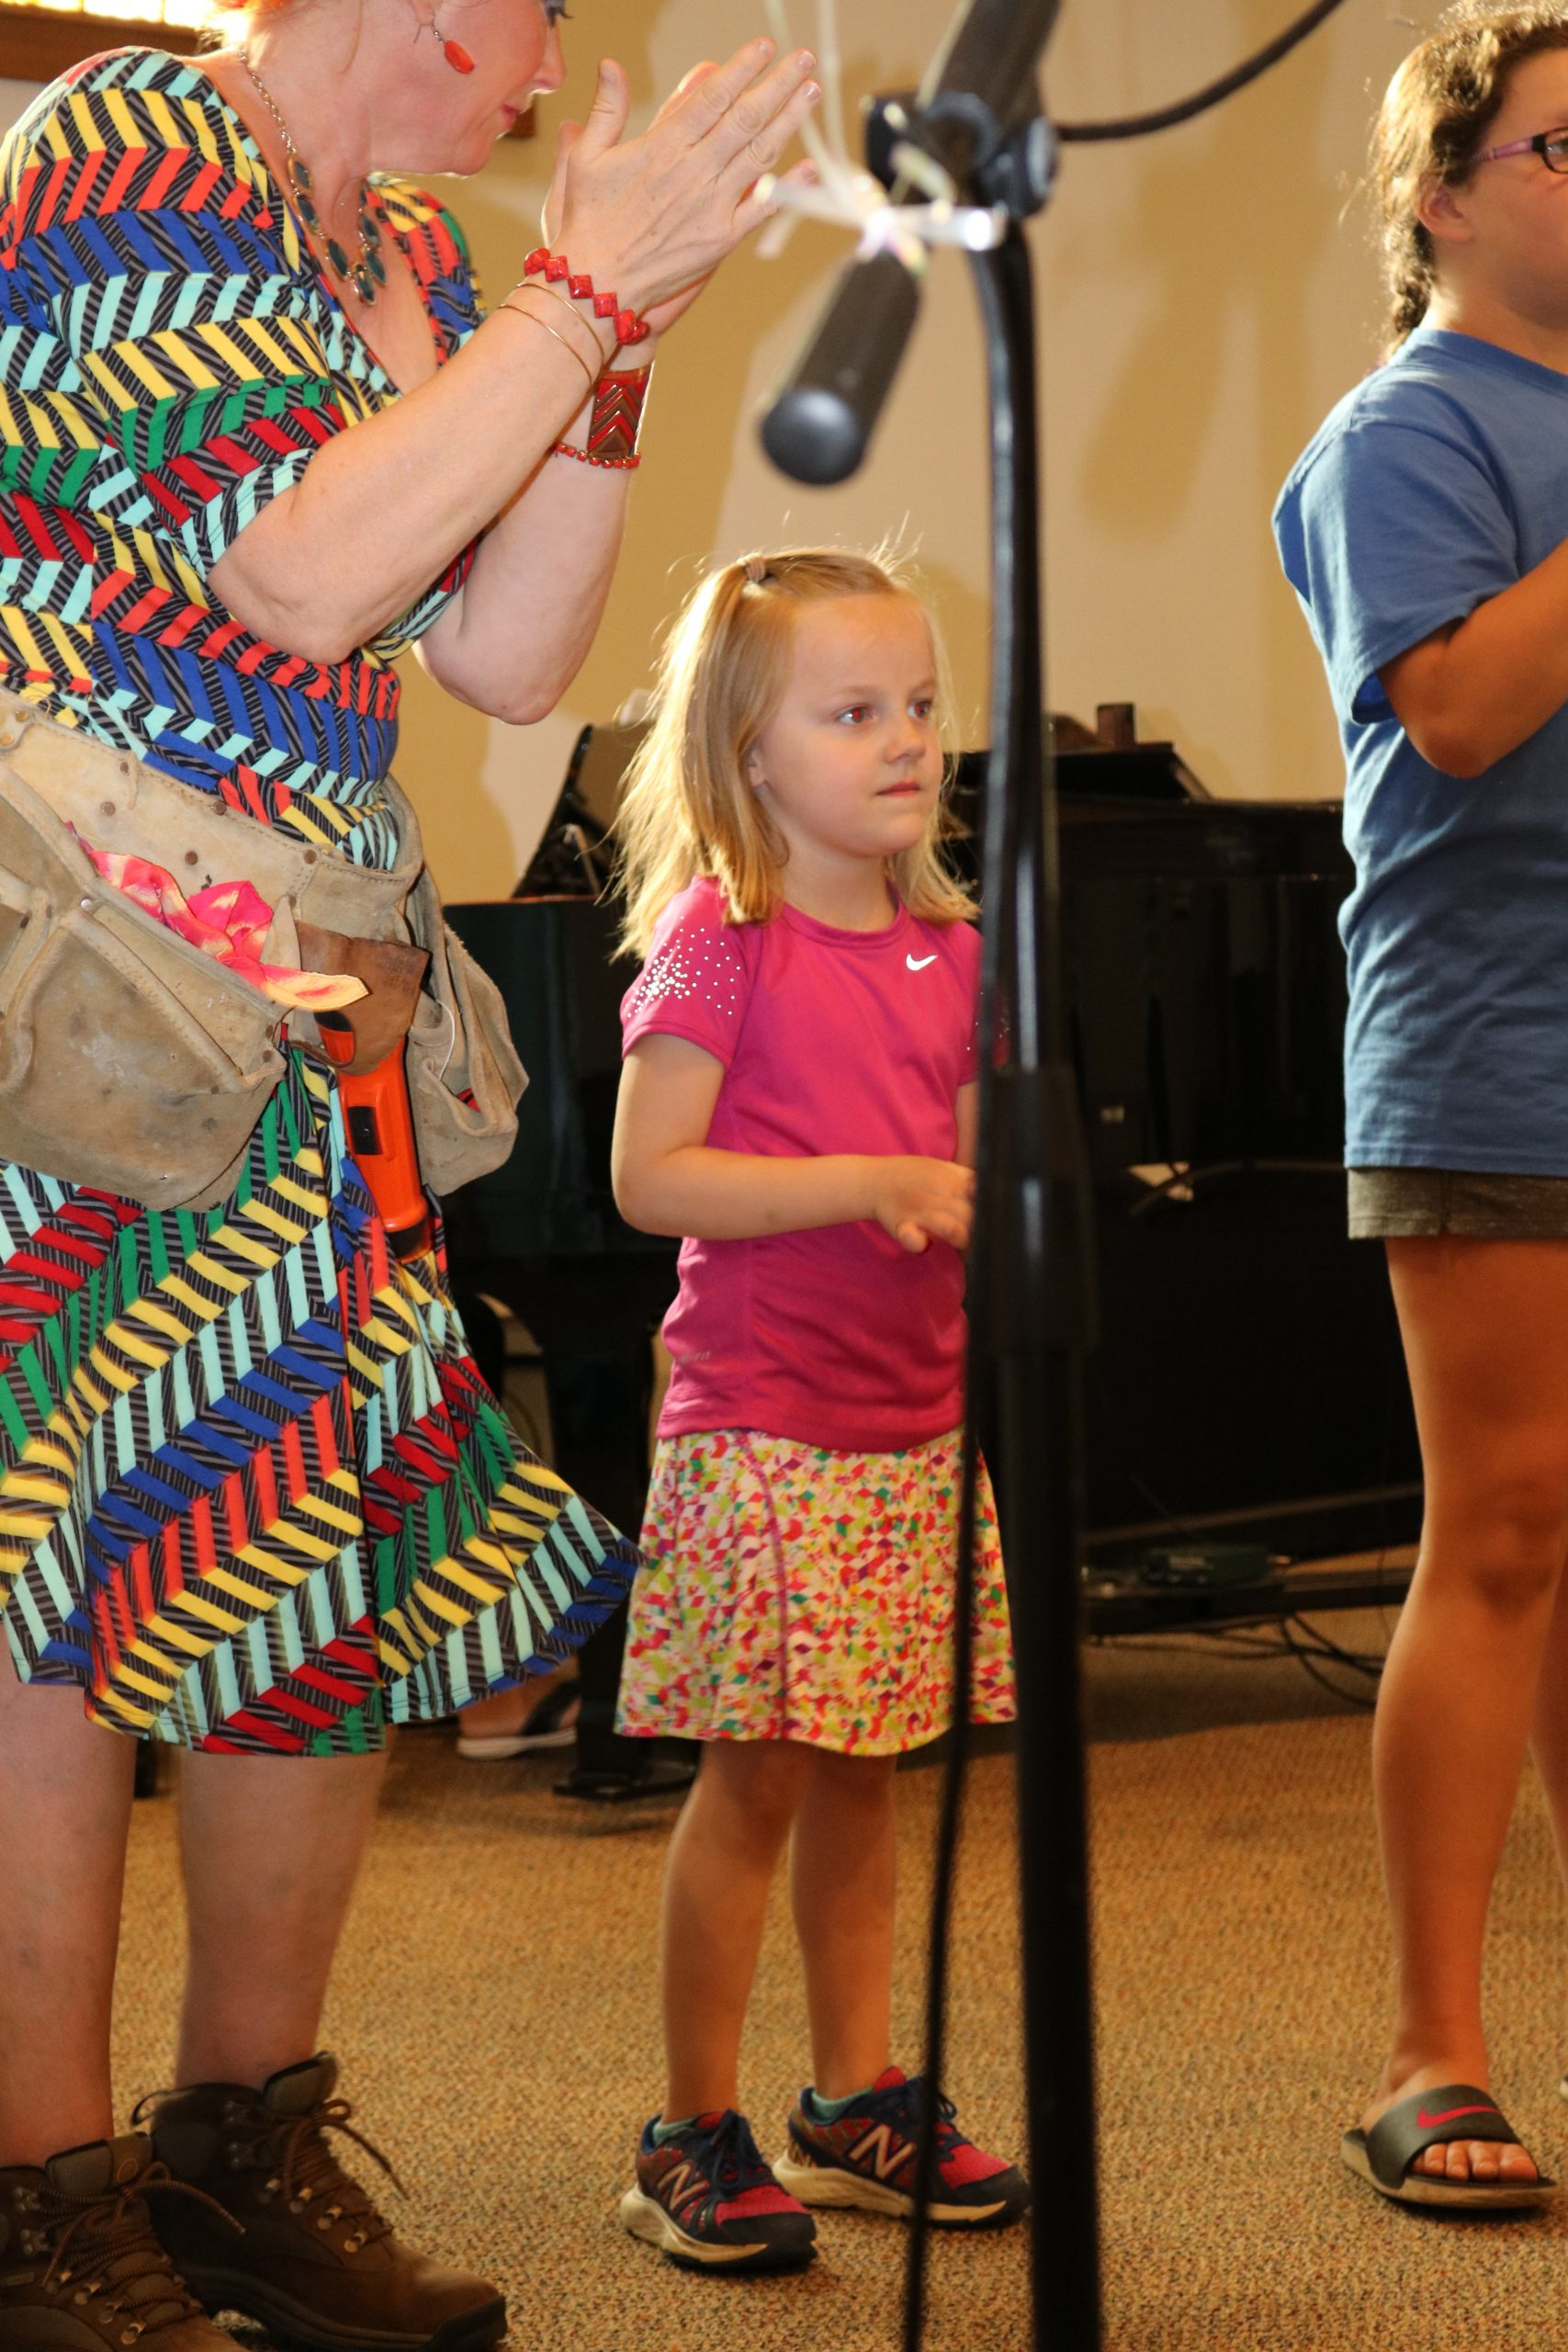 Little girl next to microphone